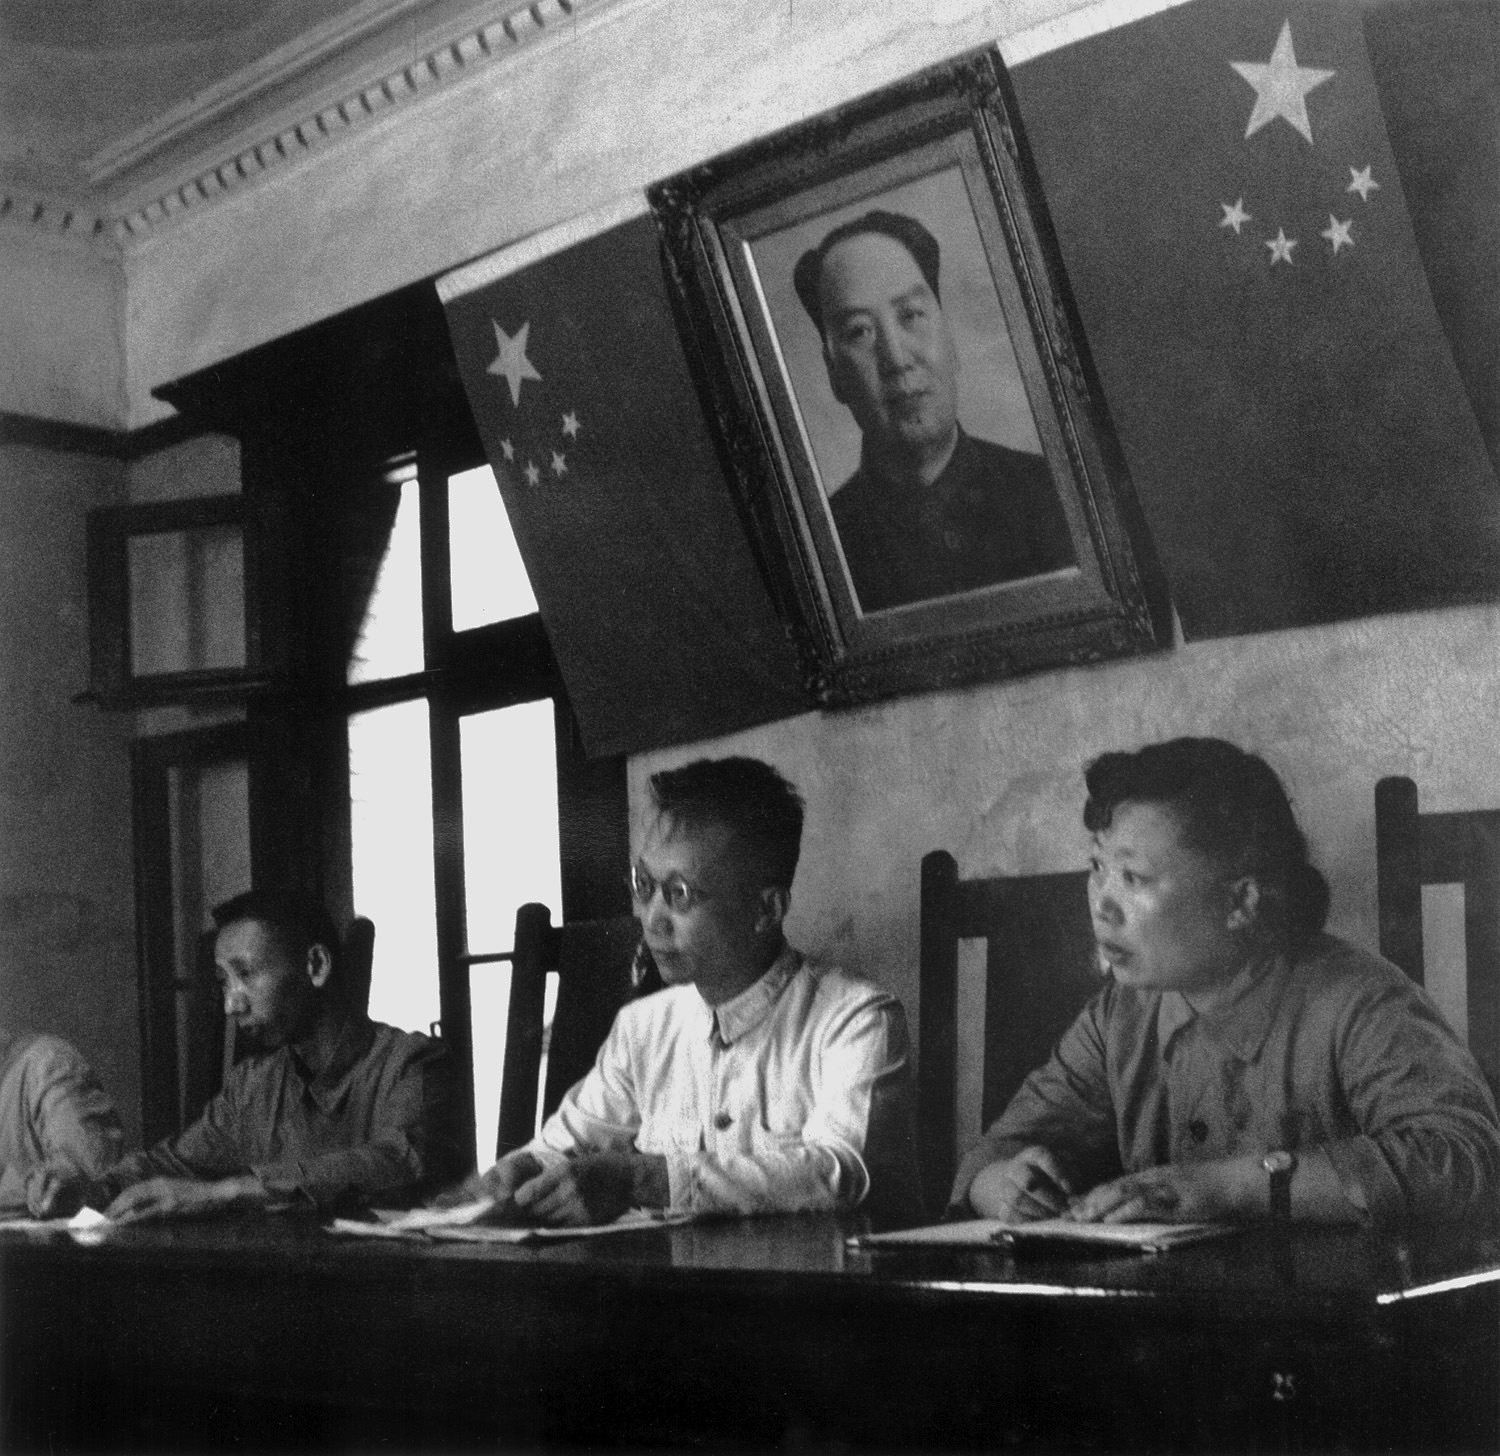 The judge's bench of a Shanghai courtroom considering a case about the disputed sale of a house. China, September 1956.  (RDH R39-09)